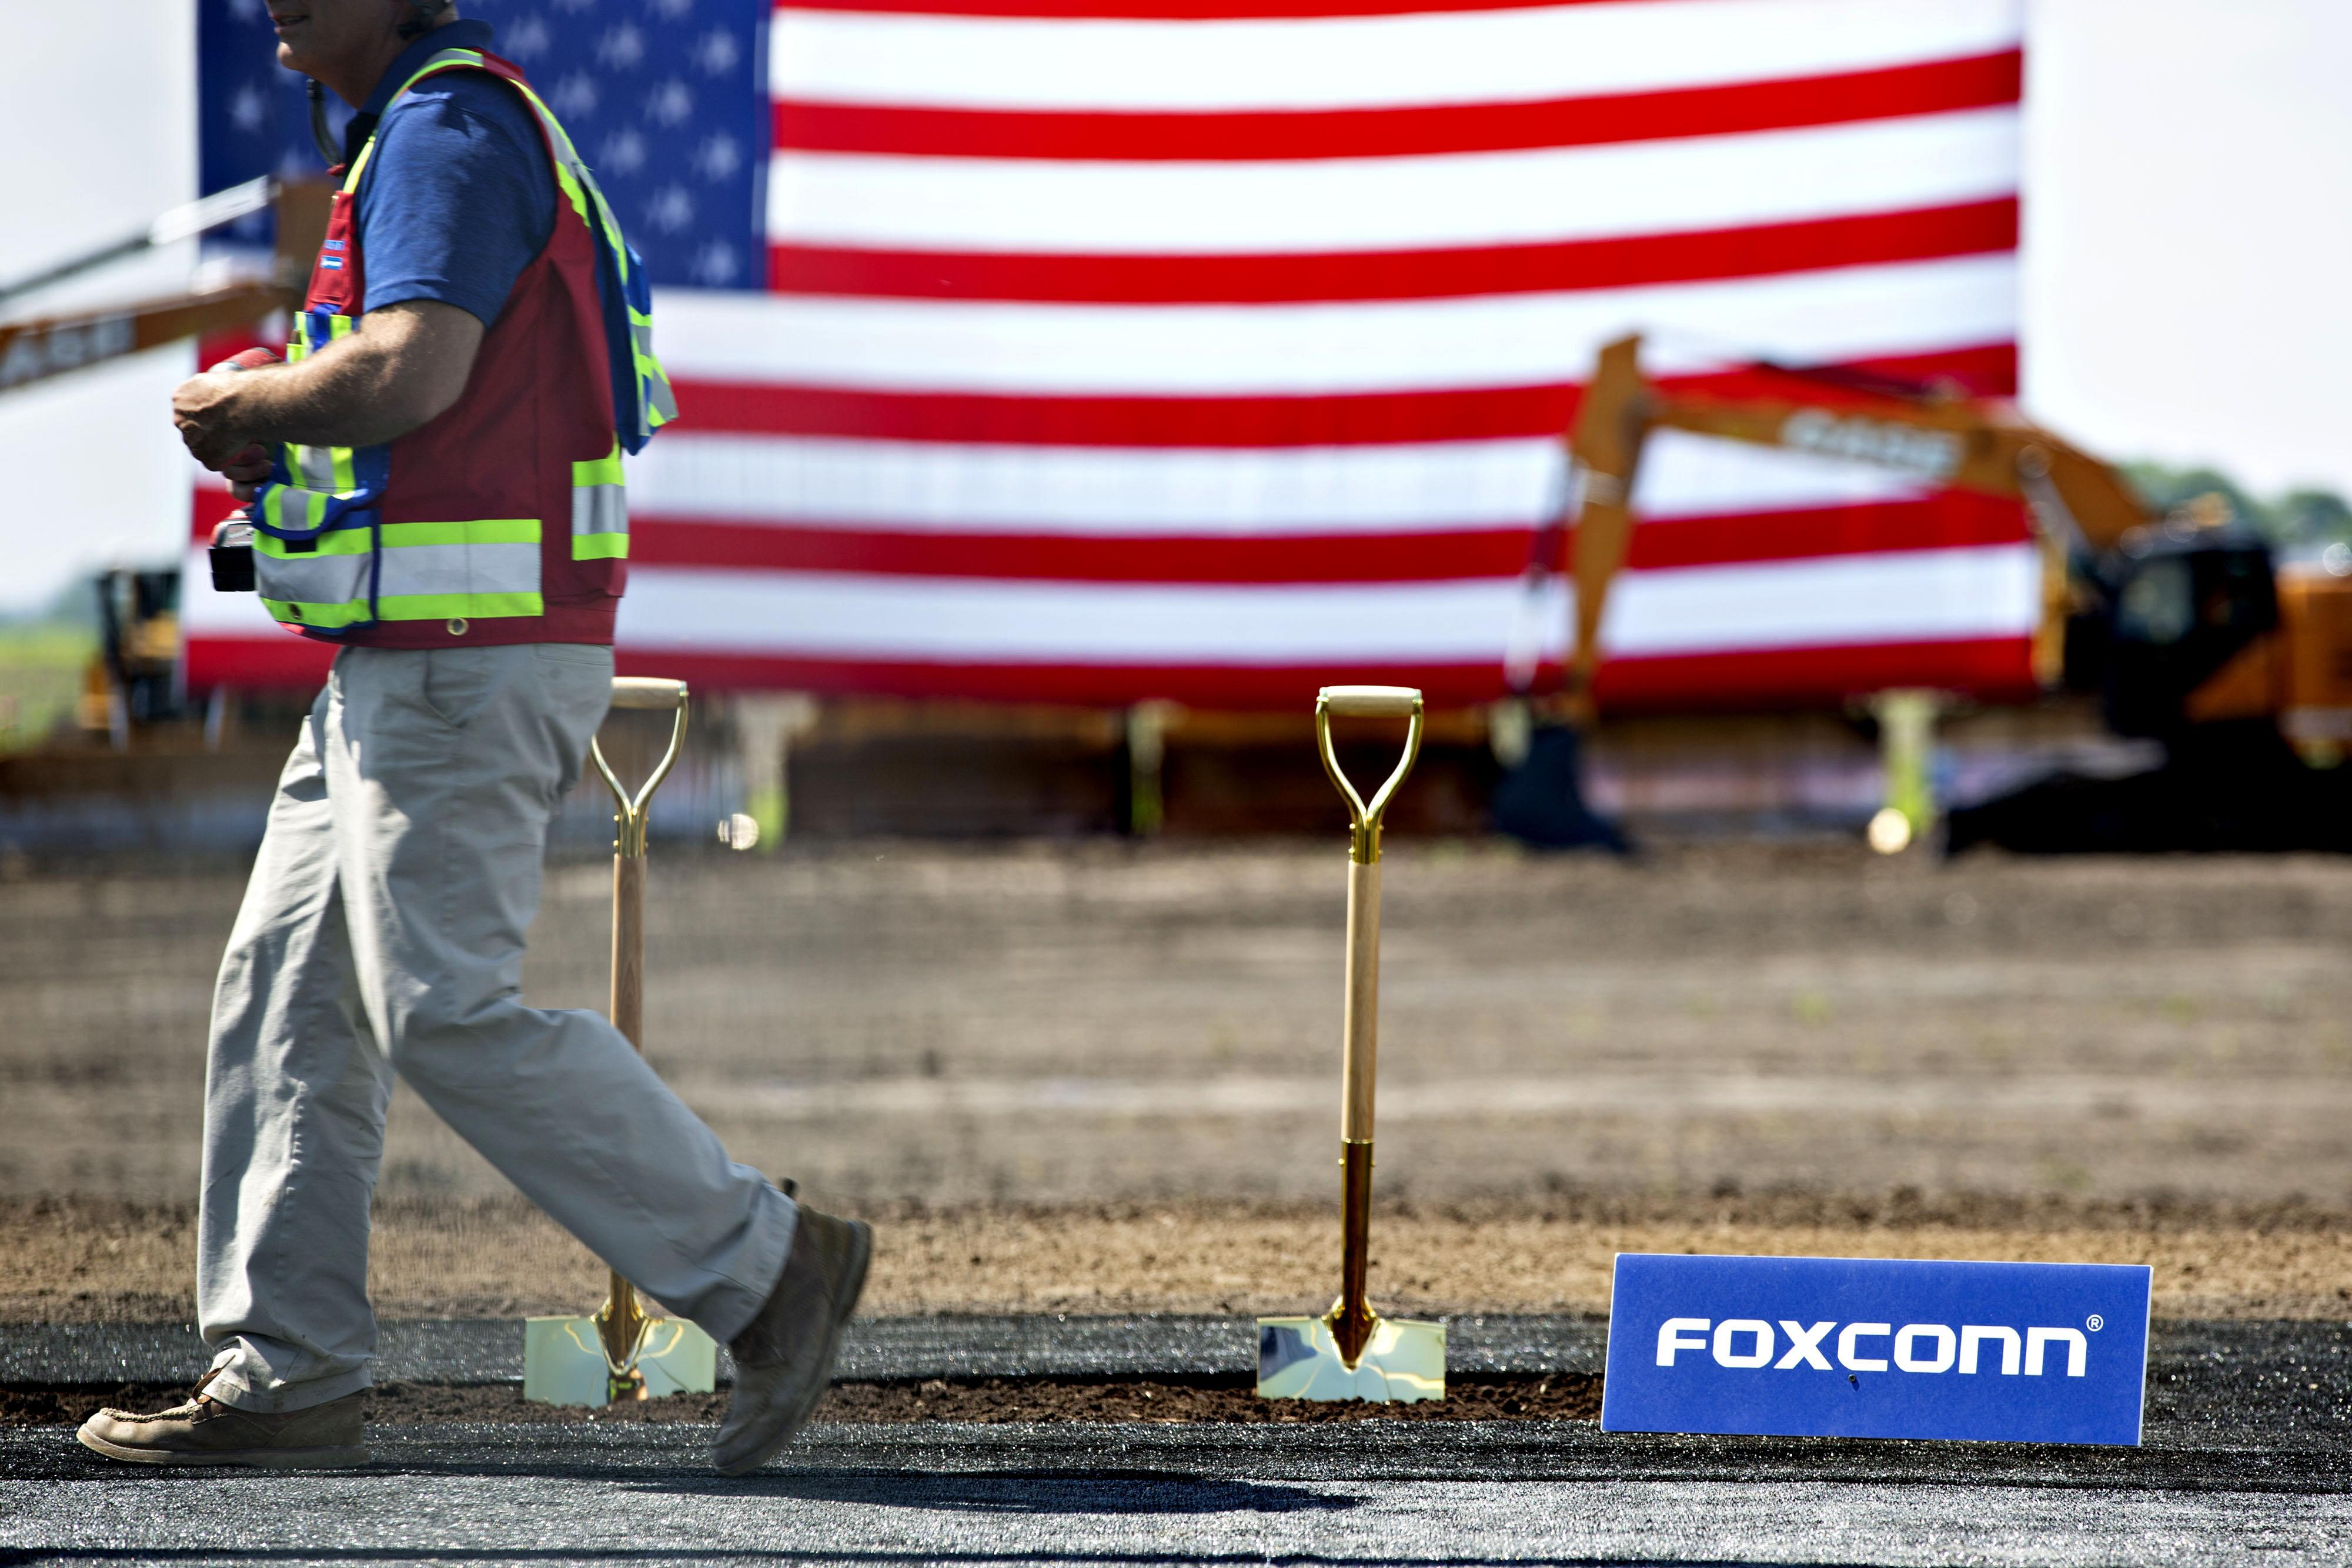 Foxconn May Slow Pace of Recruitment at New Wisconsin Plant